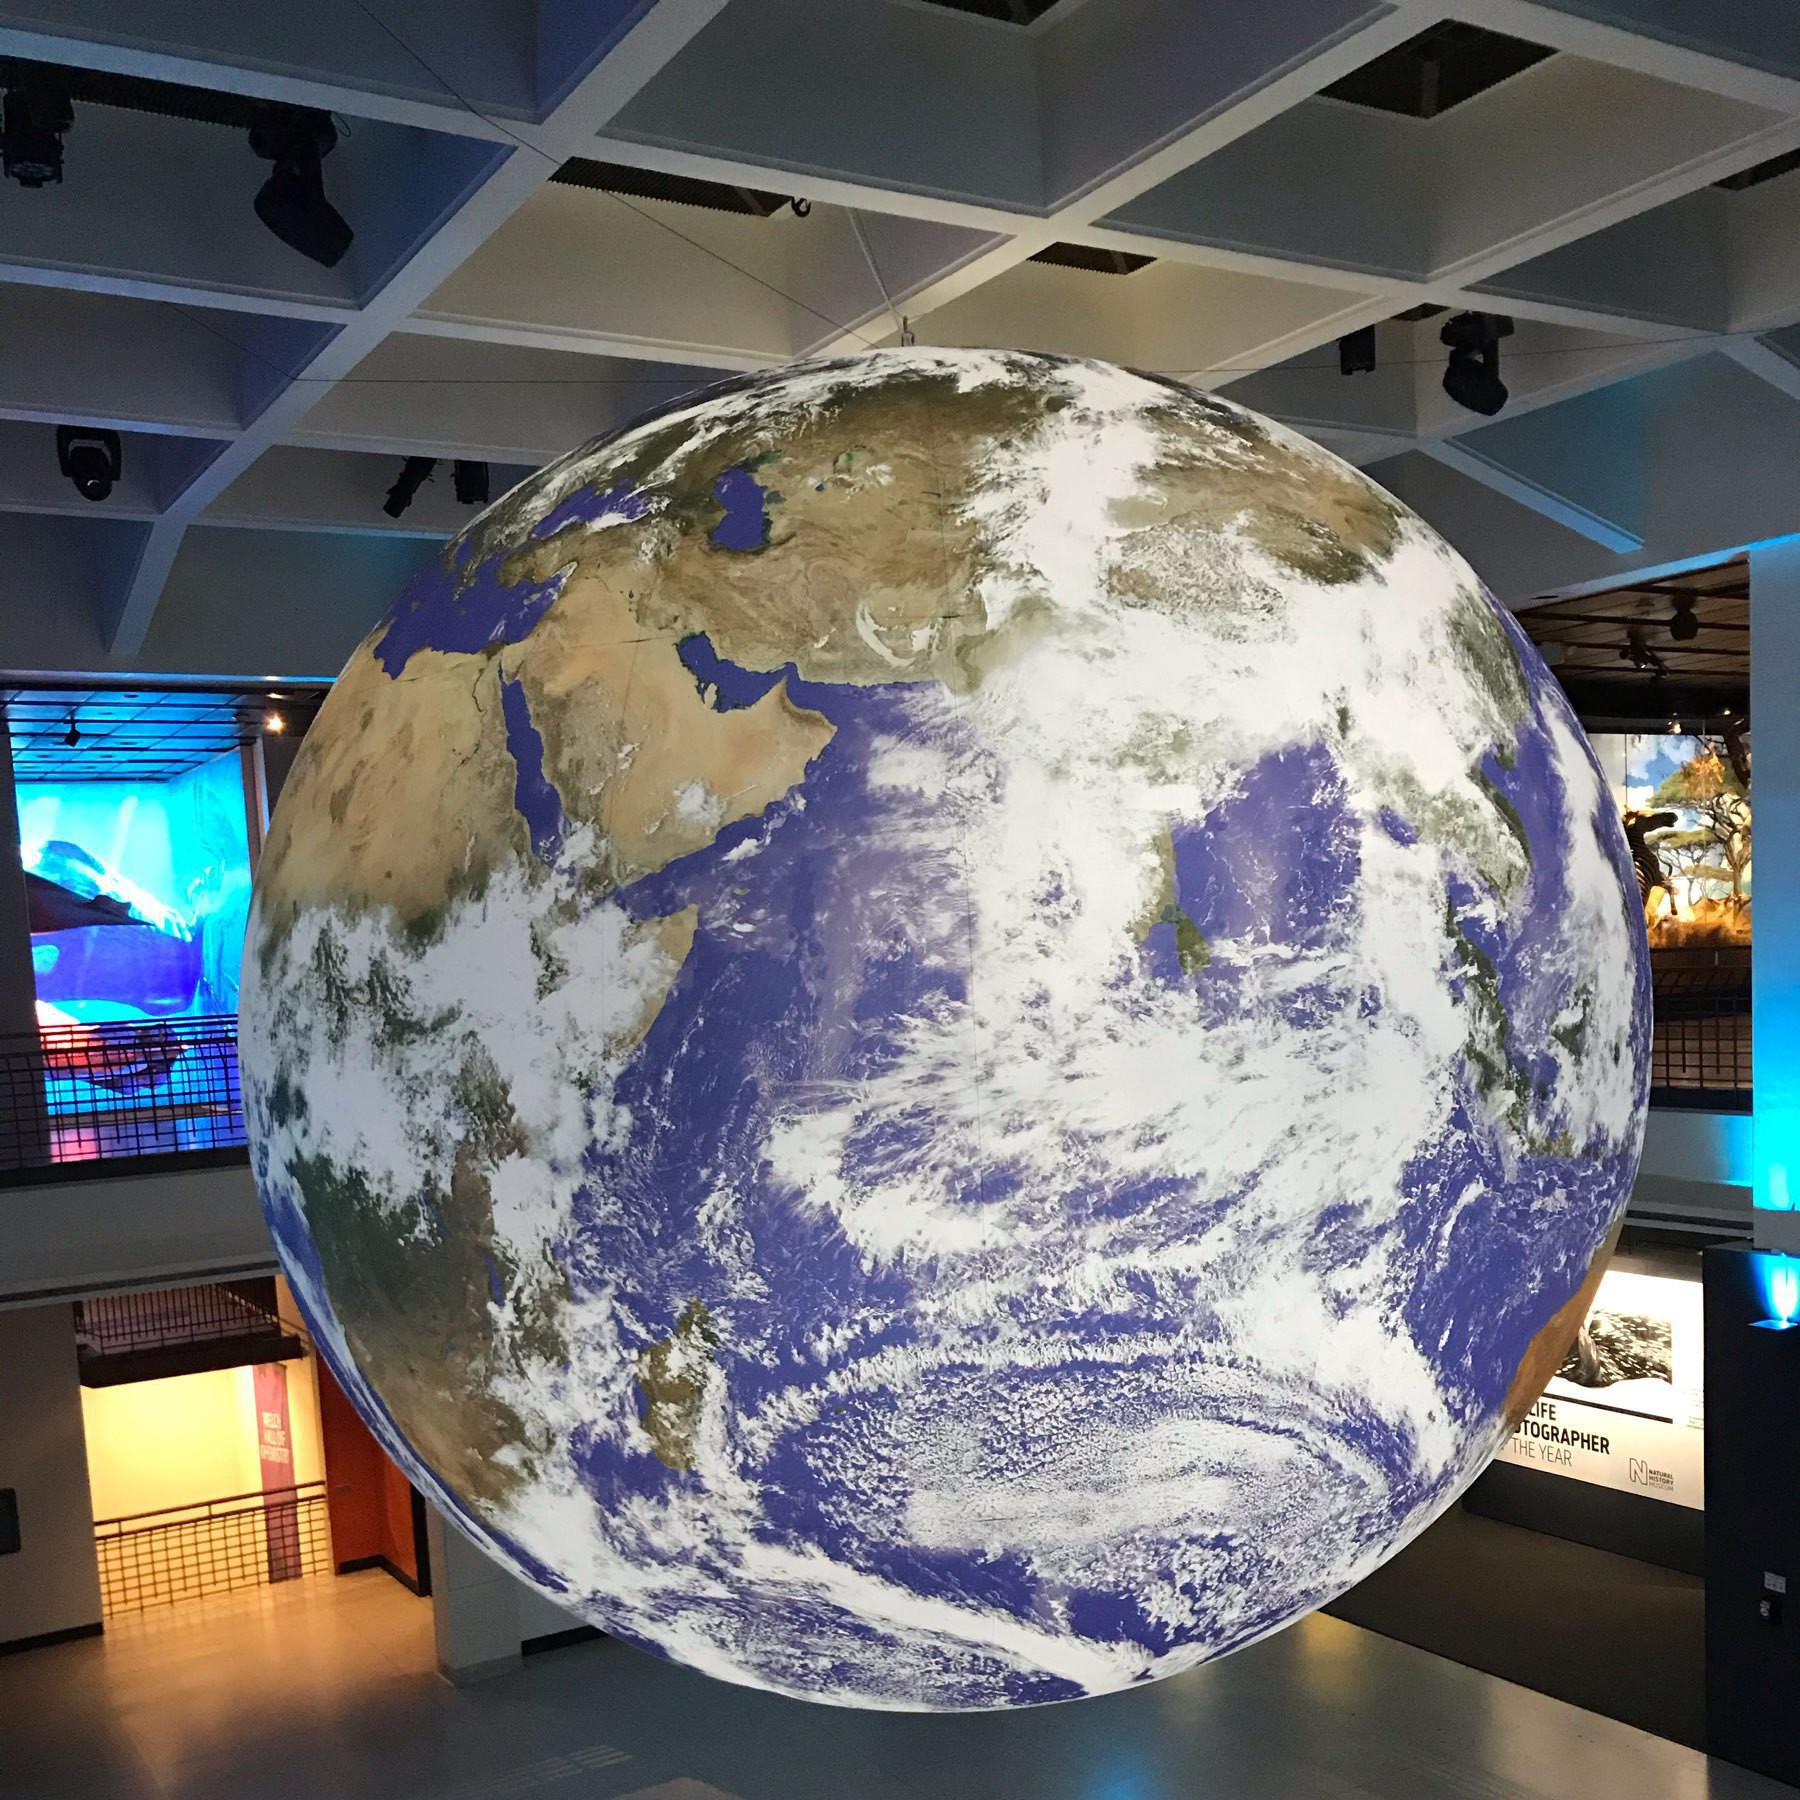 image of a large suspended replica of the planet earth